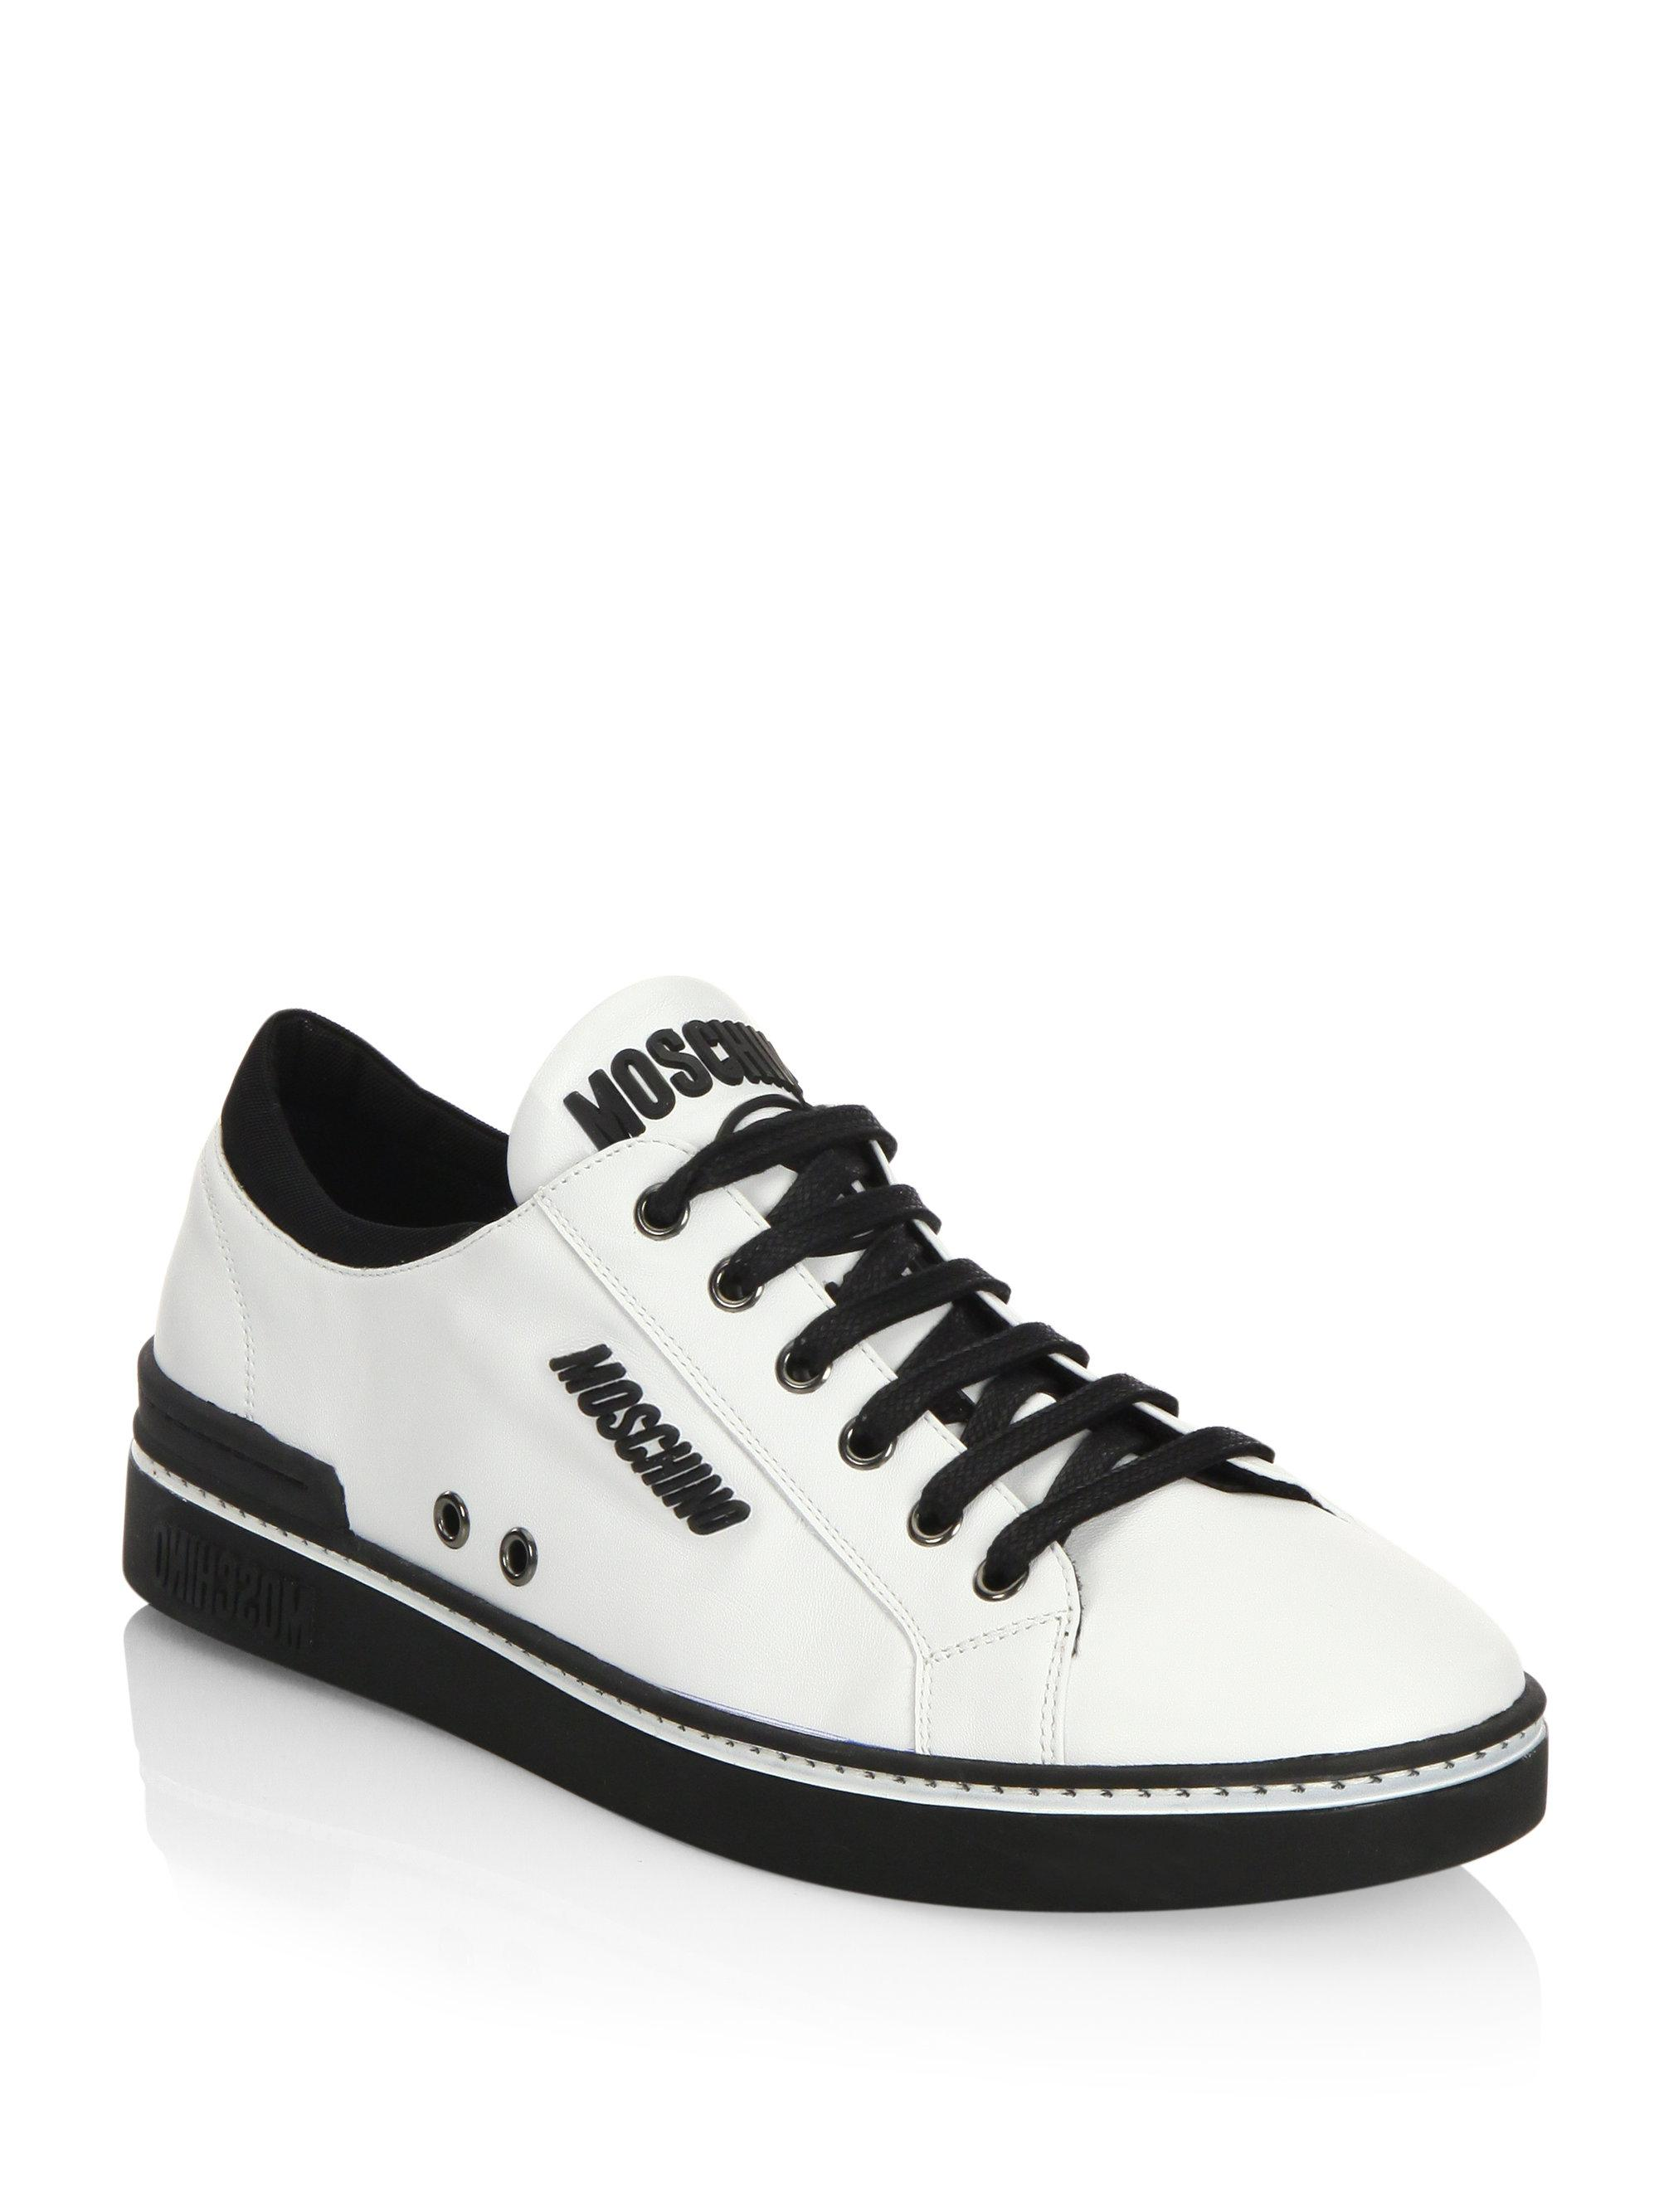 Moschino Low Top Leather Sneakers